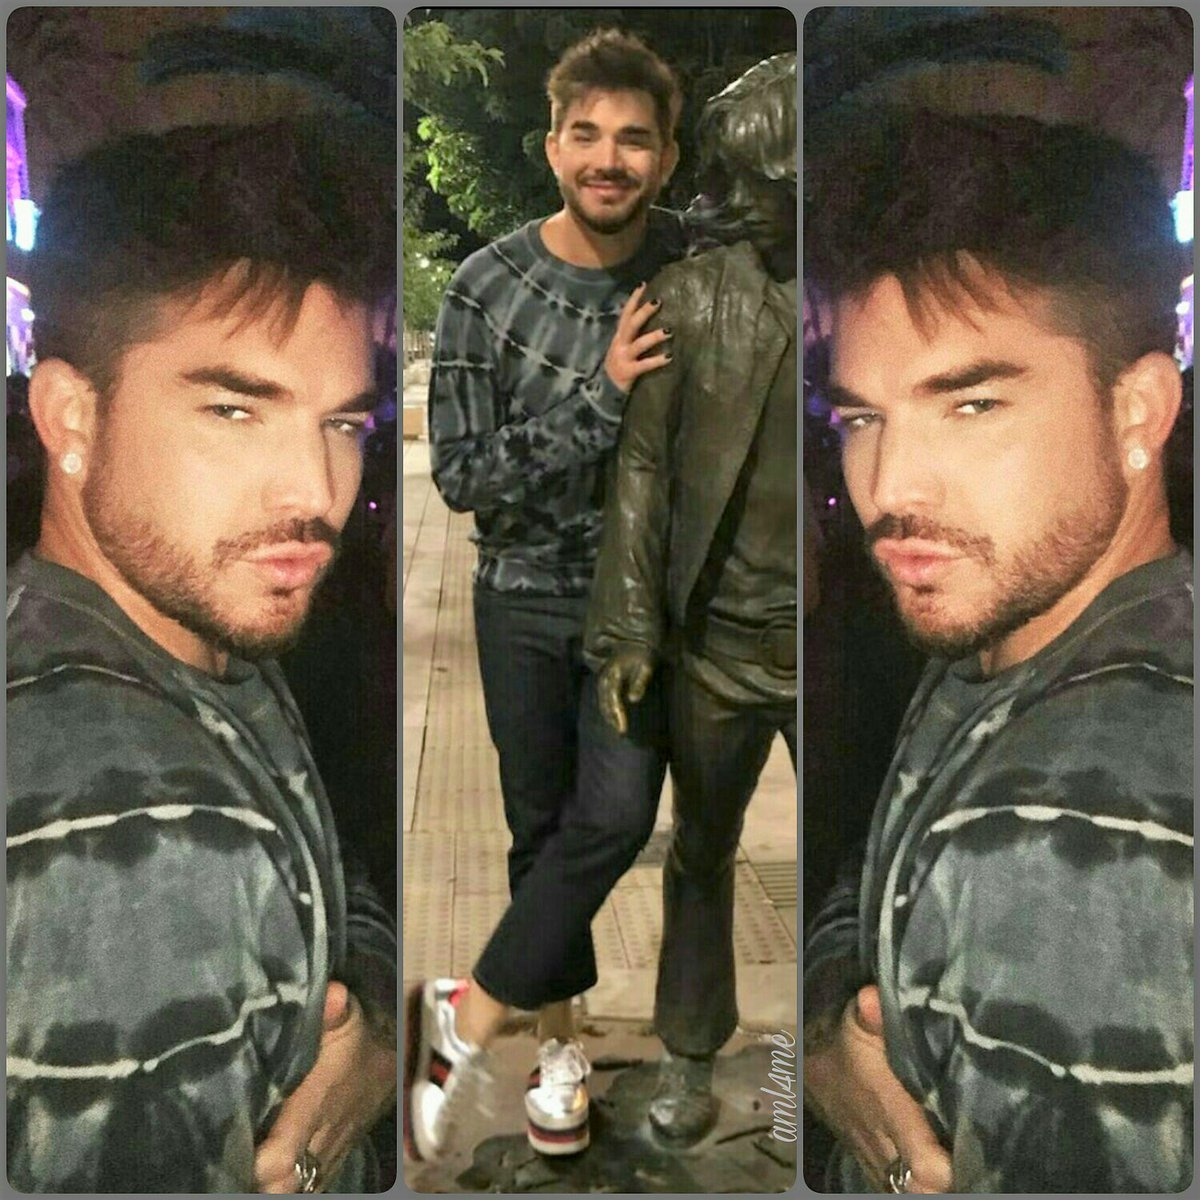 From hotaf to adorably cute in a fraction of a second - and back again  #AdamLambert #ibiza2017<br>http://pic.twitter.com/3KNKrwUpEF